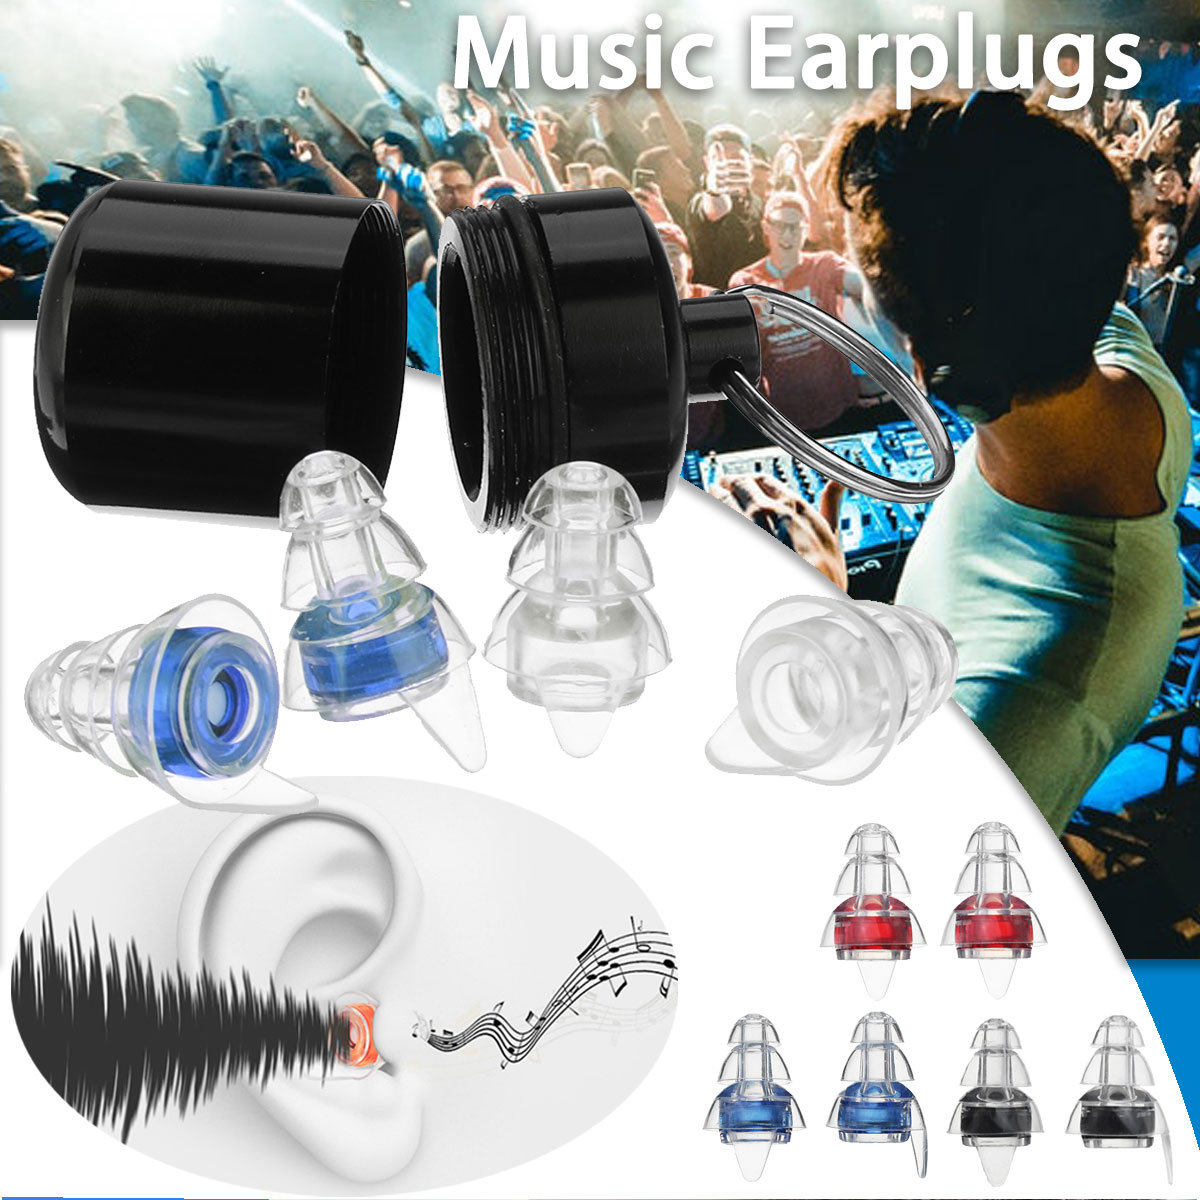 Safurance 2Pairs Noise Cancelling Hearing Protection Earplugs For Concerts Musician Motorcycles Reusable Silicone Ear plugsSafurance 2Pairs Noise Cancelling Hearing Protection Earplugs For Concerts Musician Motorcycles Reusable Silicone Ear plugs